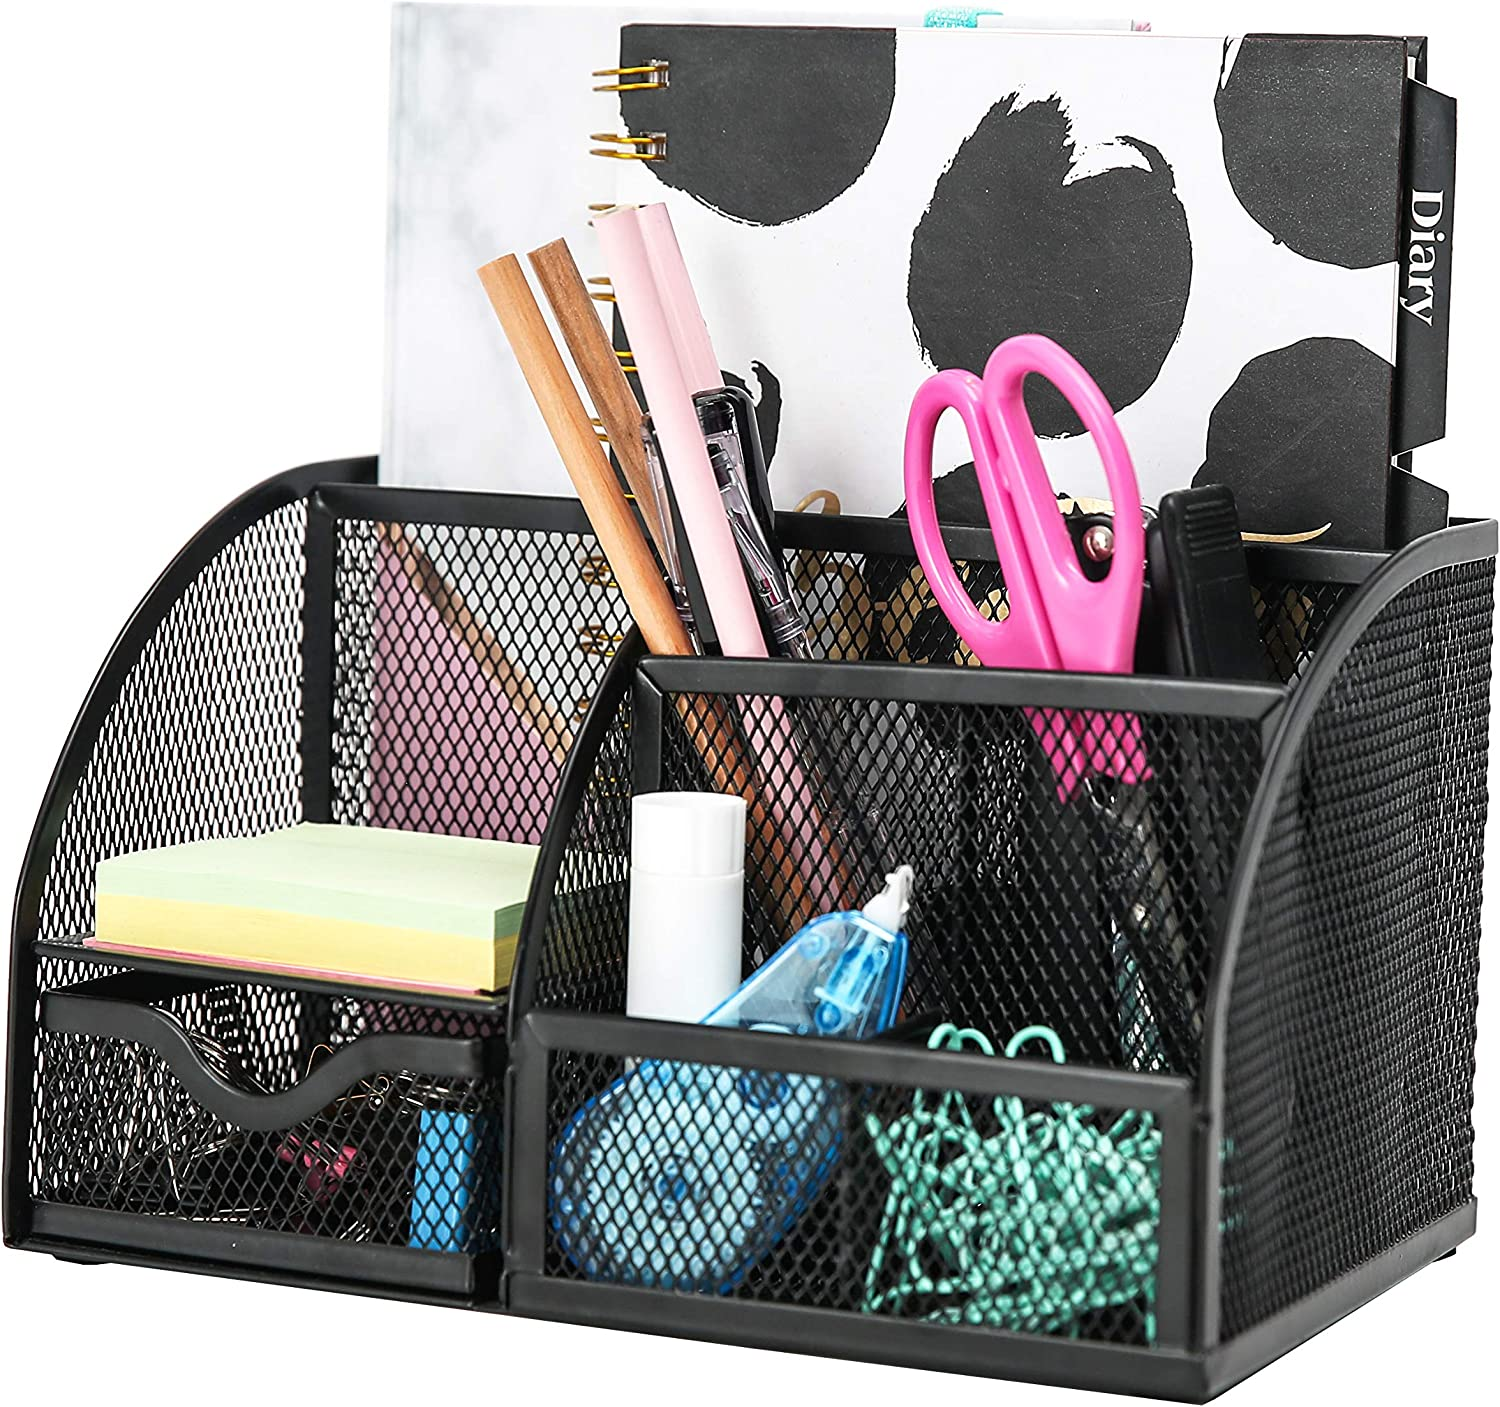 Exerz Mesh Desk Organizer Office with 6 Compartments + Drawer/Desk Tidy Candy/Pen Holder/Multifunctional Organizer EX348 Black